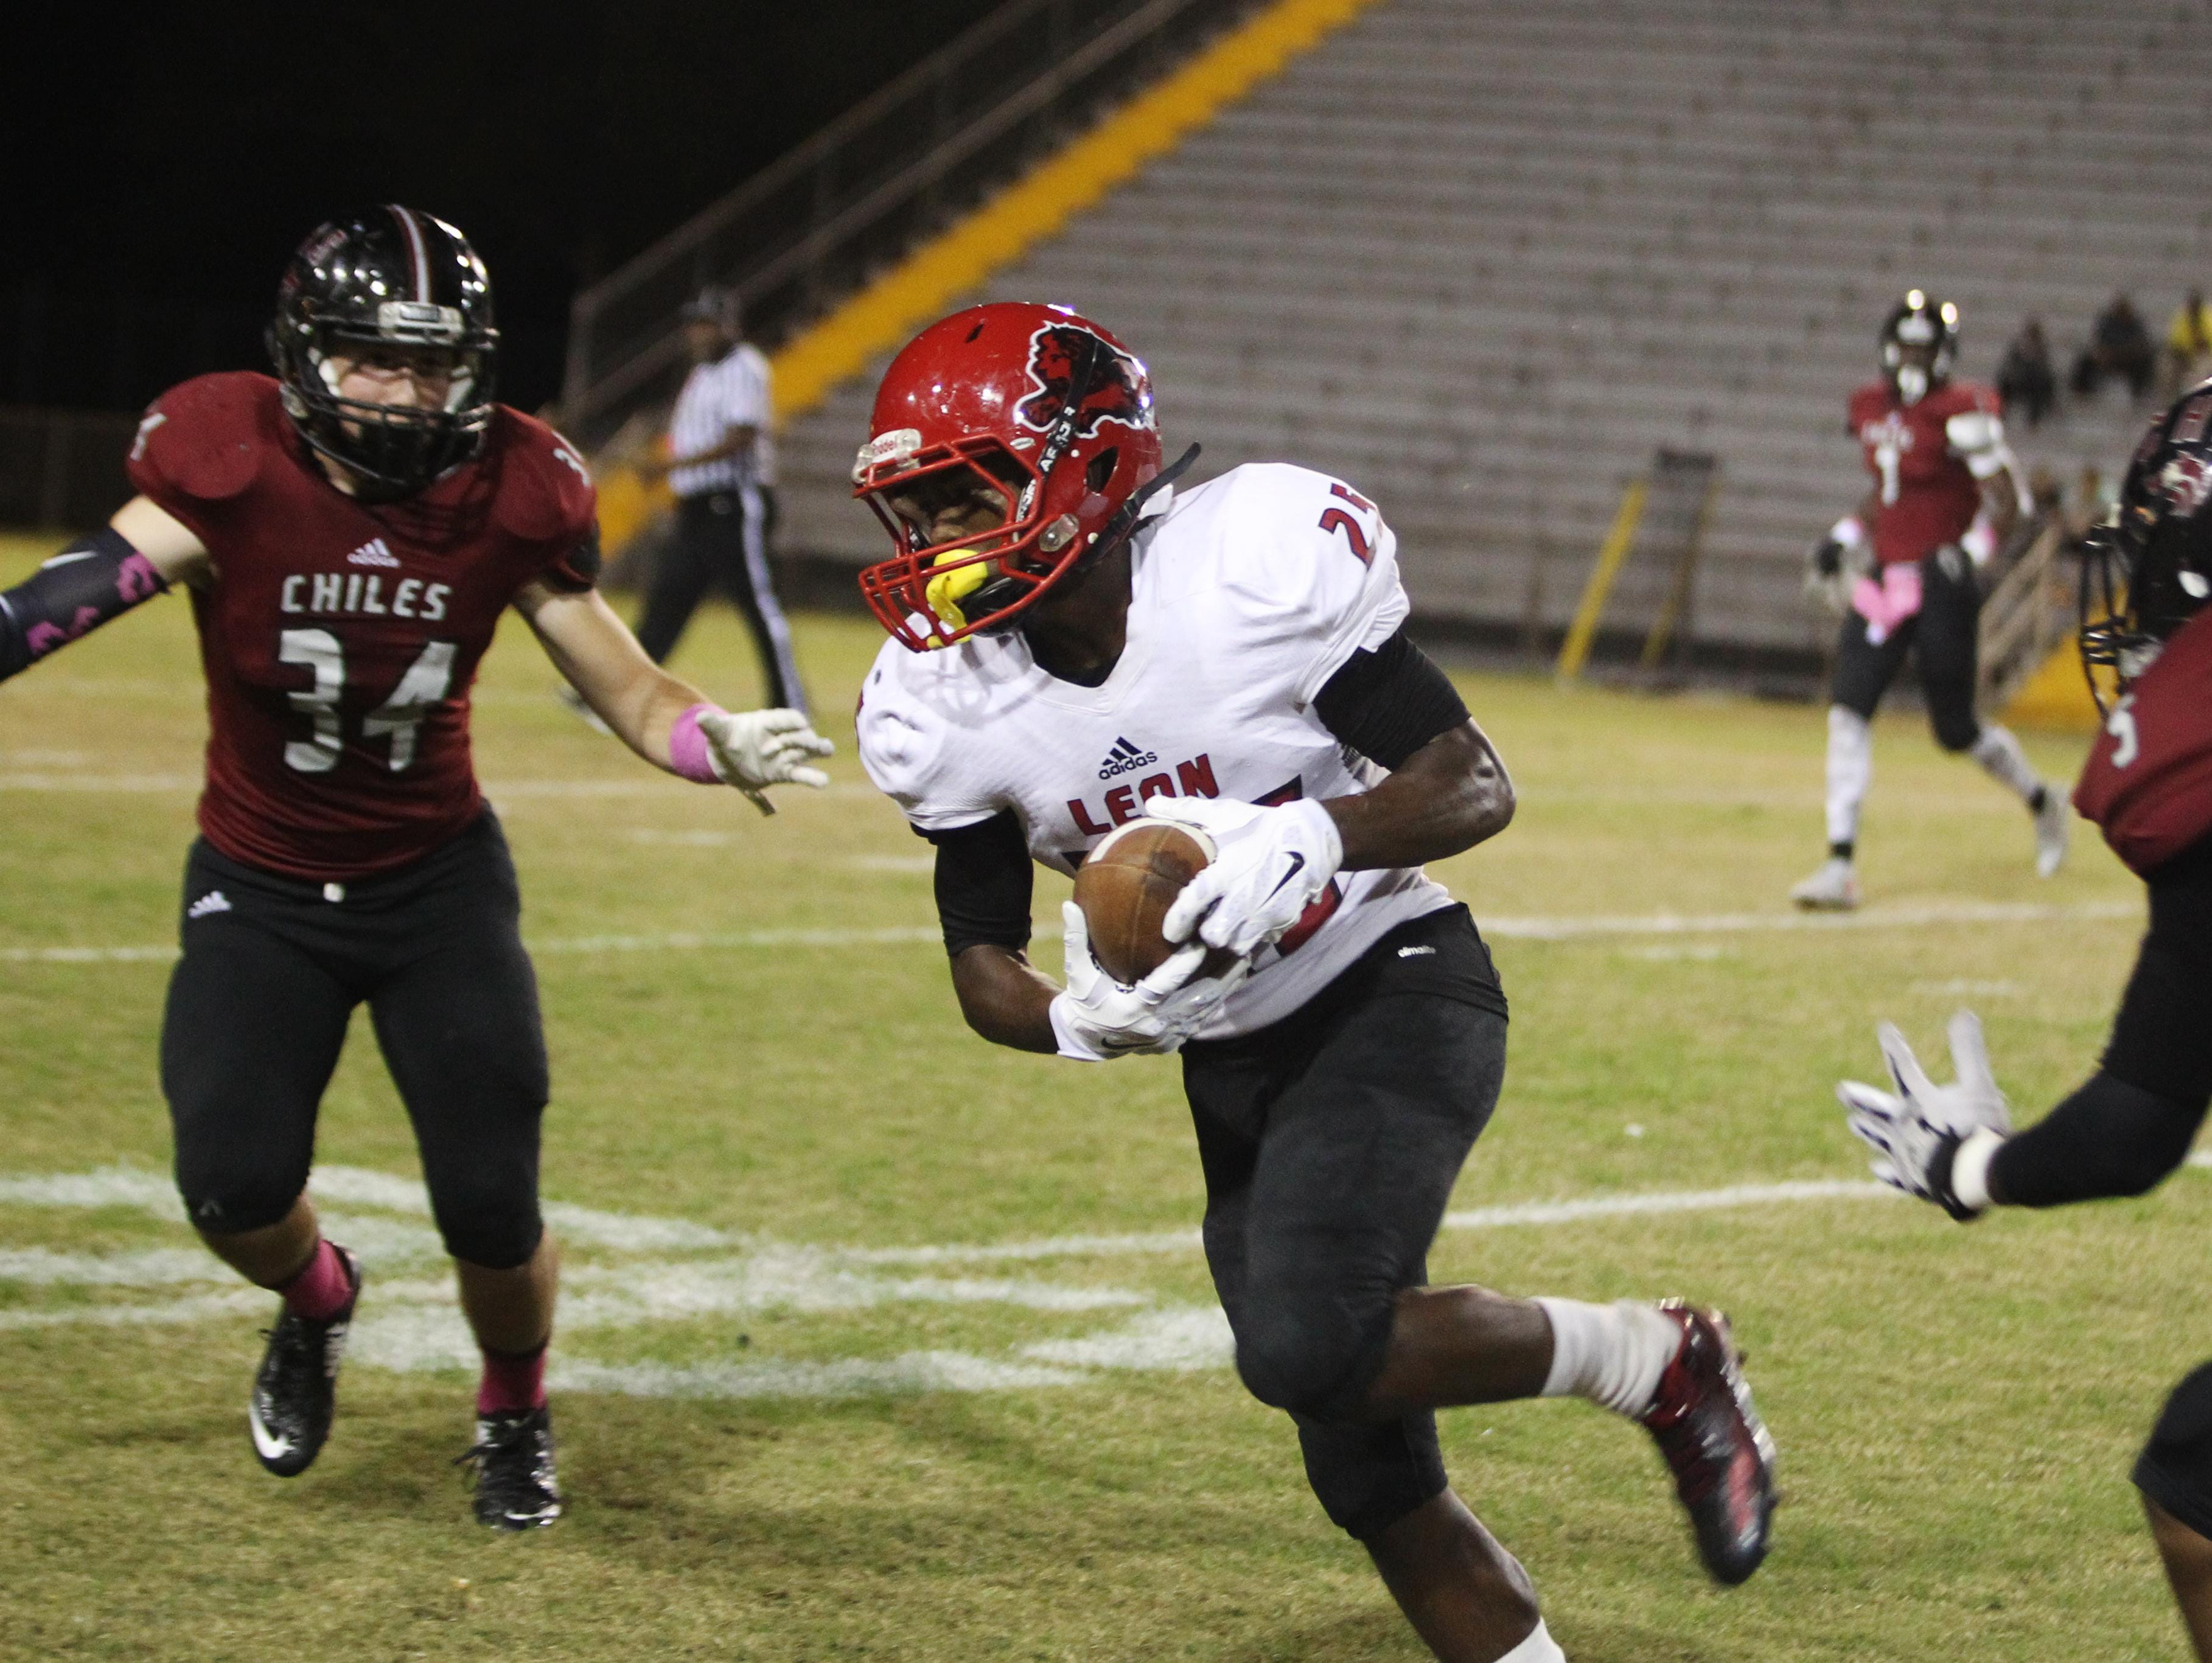 Leon receiver Javier Ferrer runs after a catch. Ferrer made the game-winning 21-yard TD catch with 28 seconds left on a fourth-down play to win 22-21 over Chiles.